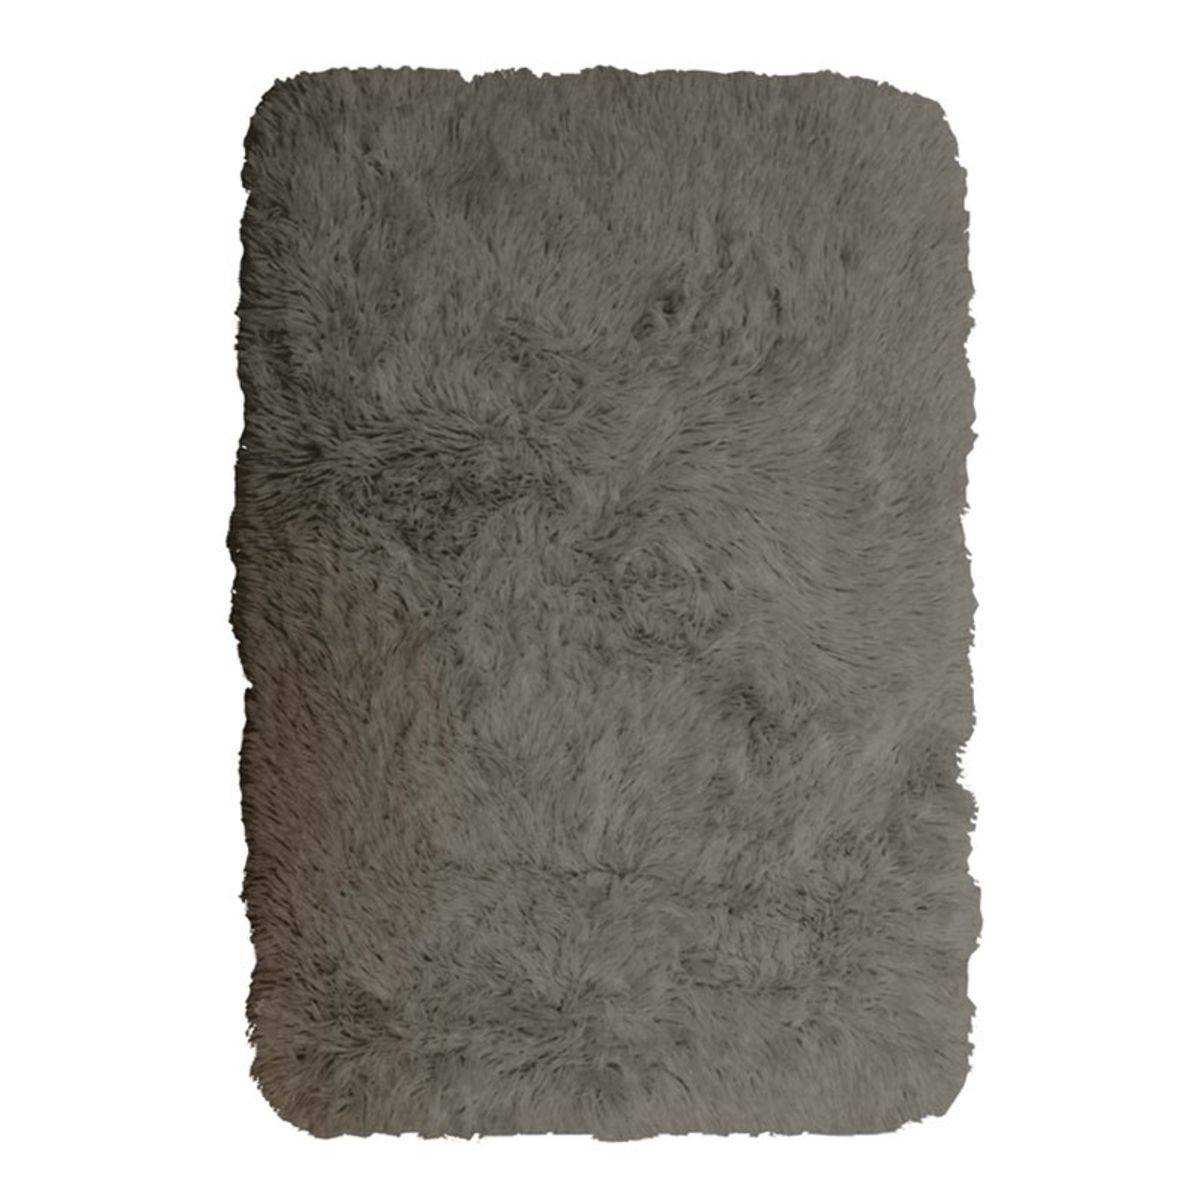 TheDecoFactory NEO YOGA - Tapis à poils longs extra-doux taupe 60x90 Taupe